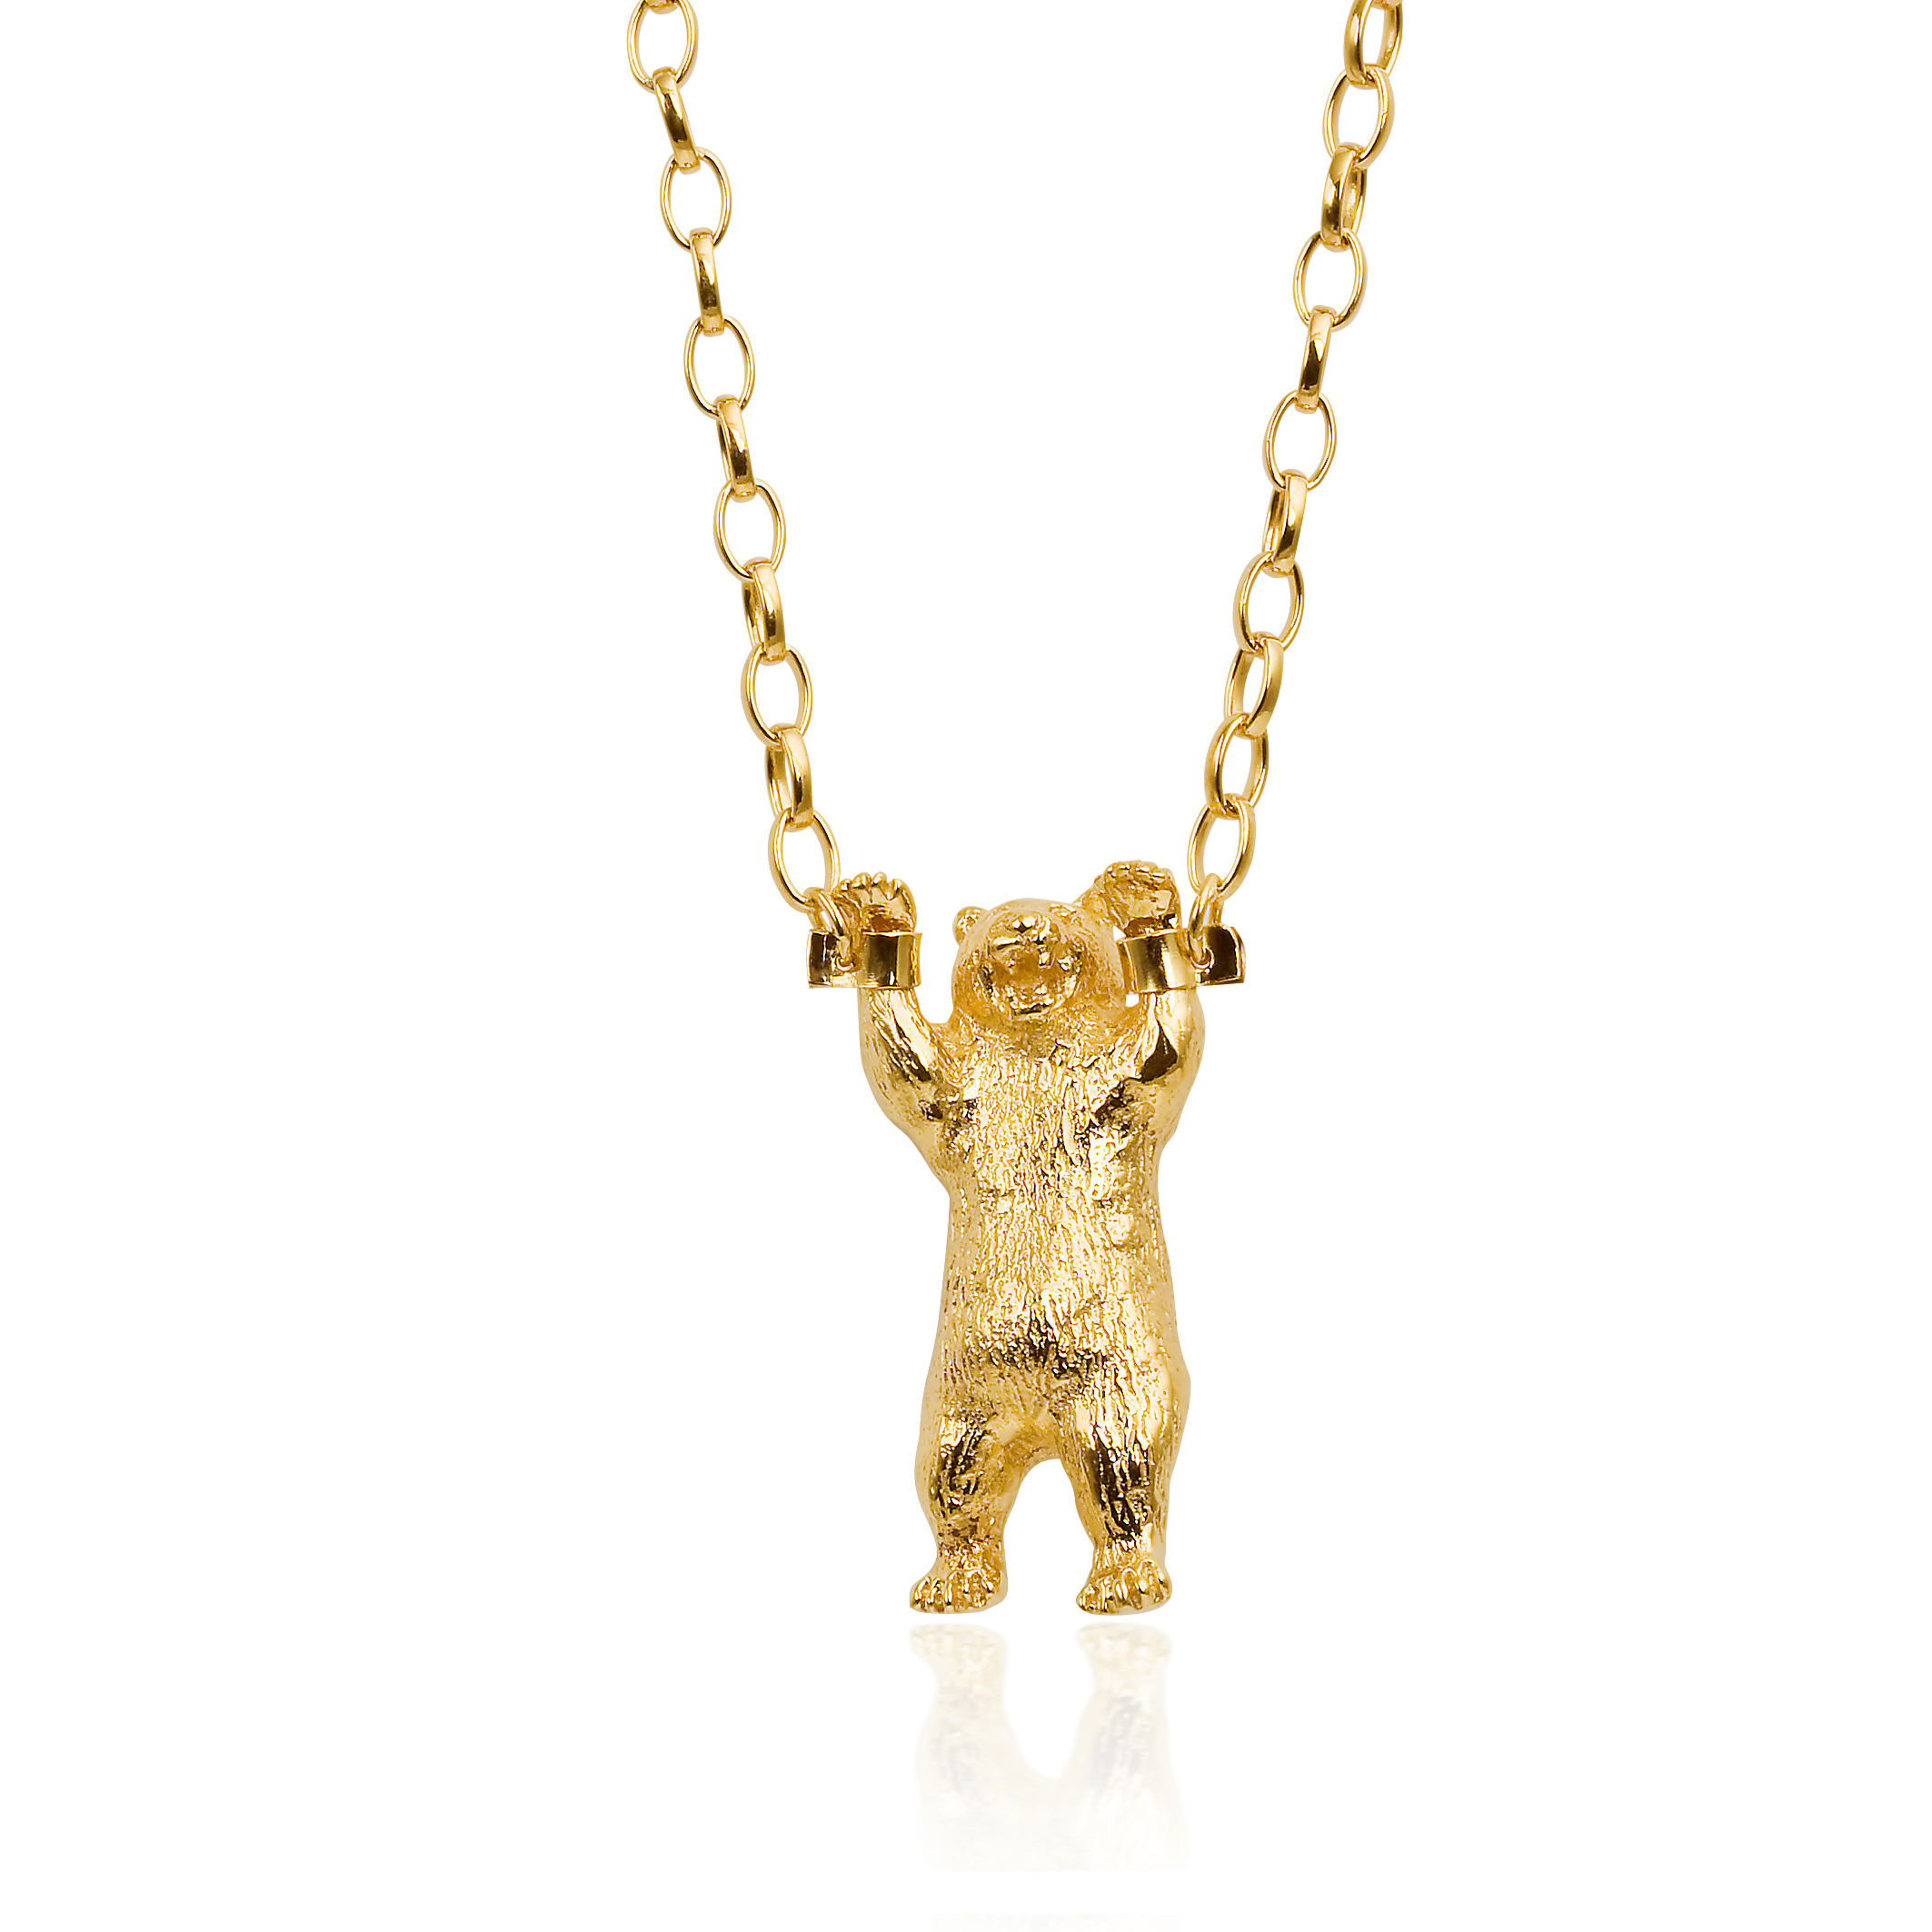 Momocreatura hand cuffed bear necklace gold.jpg